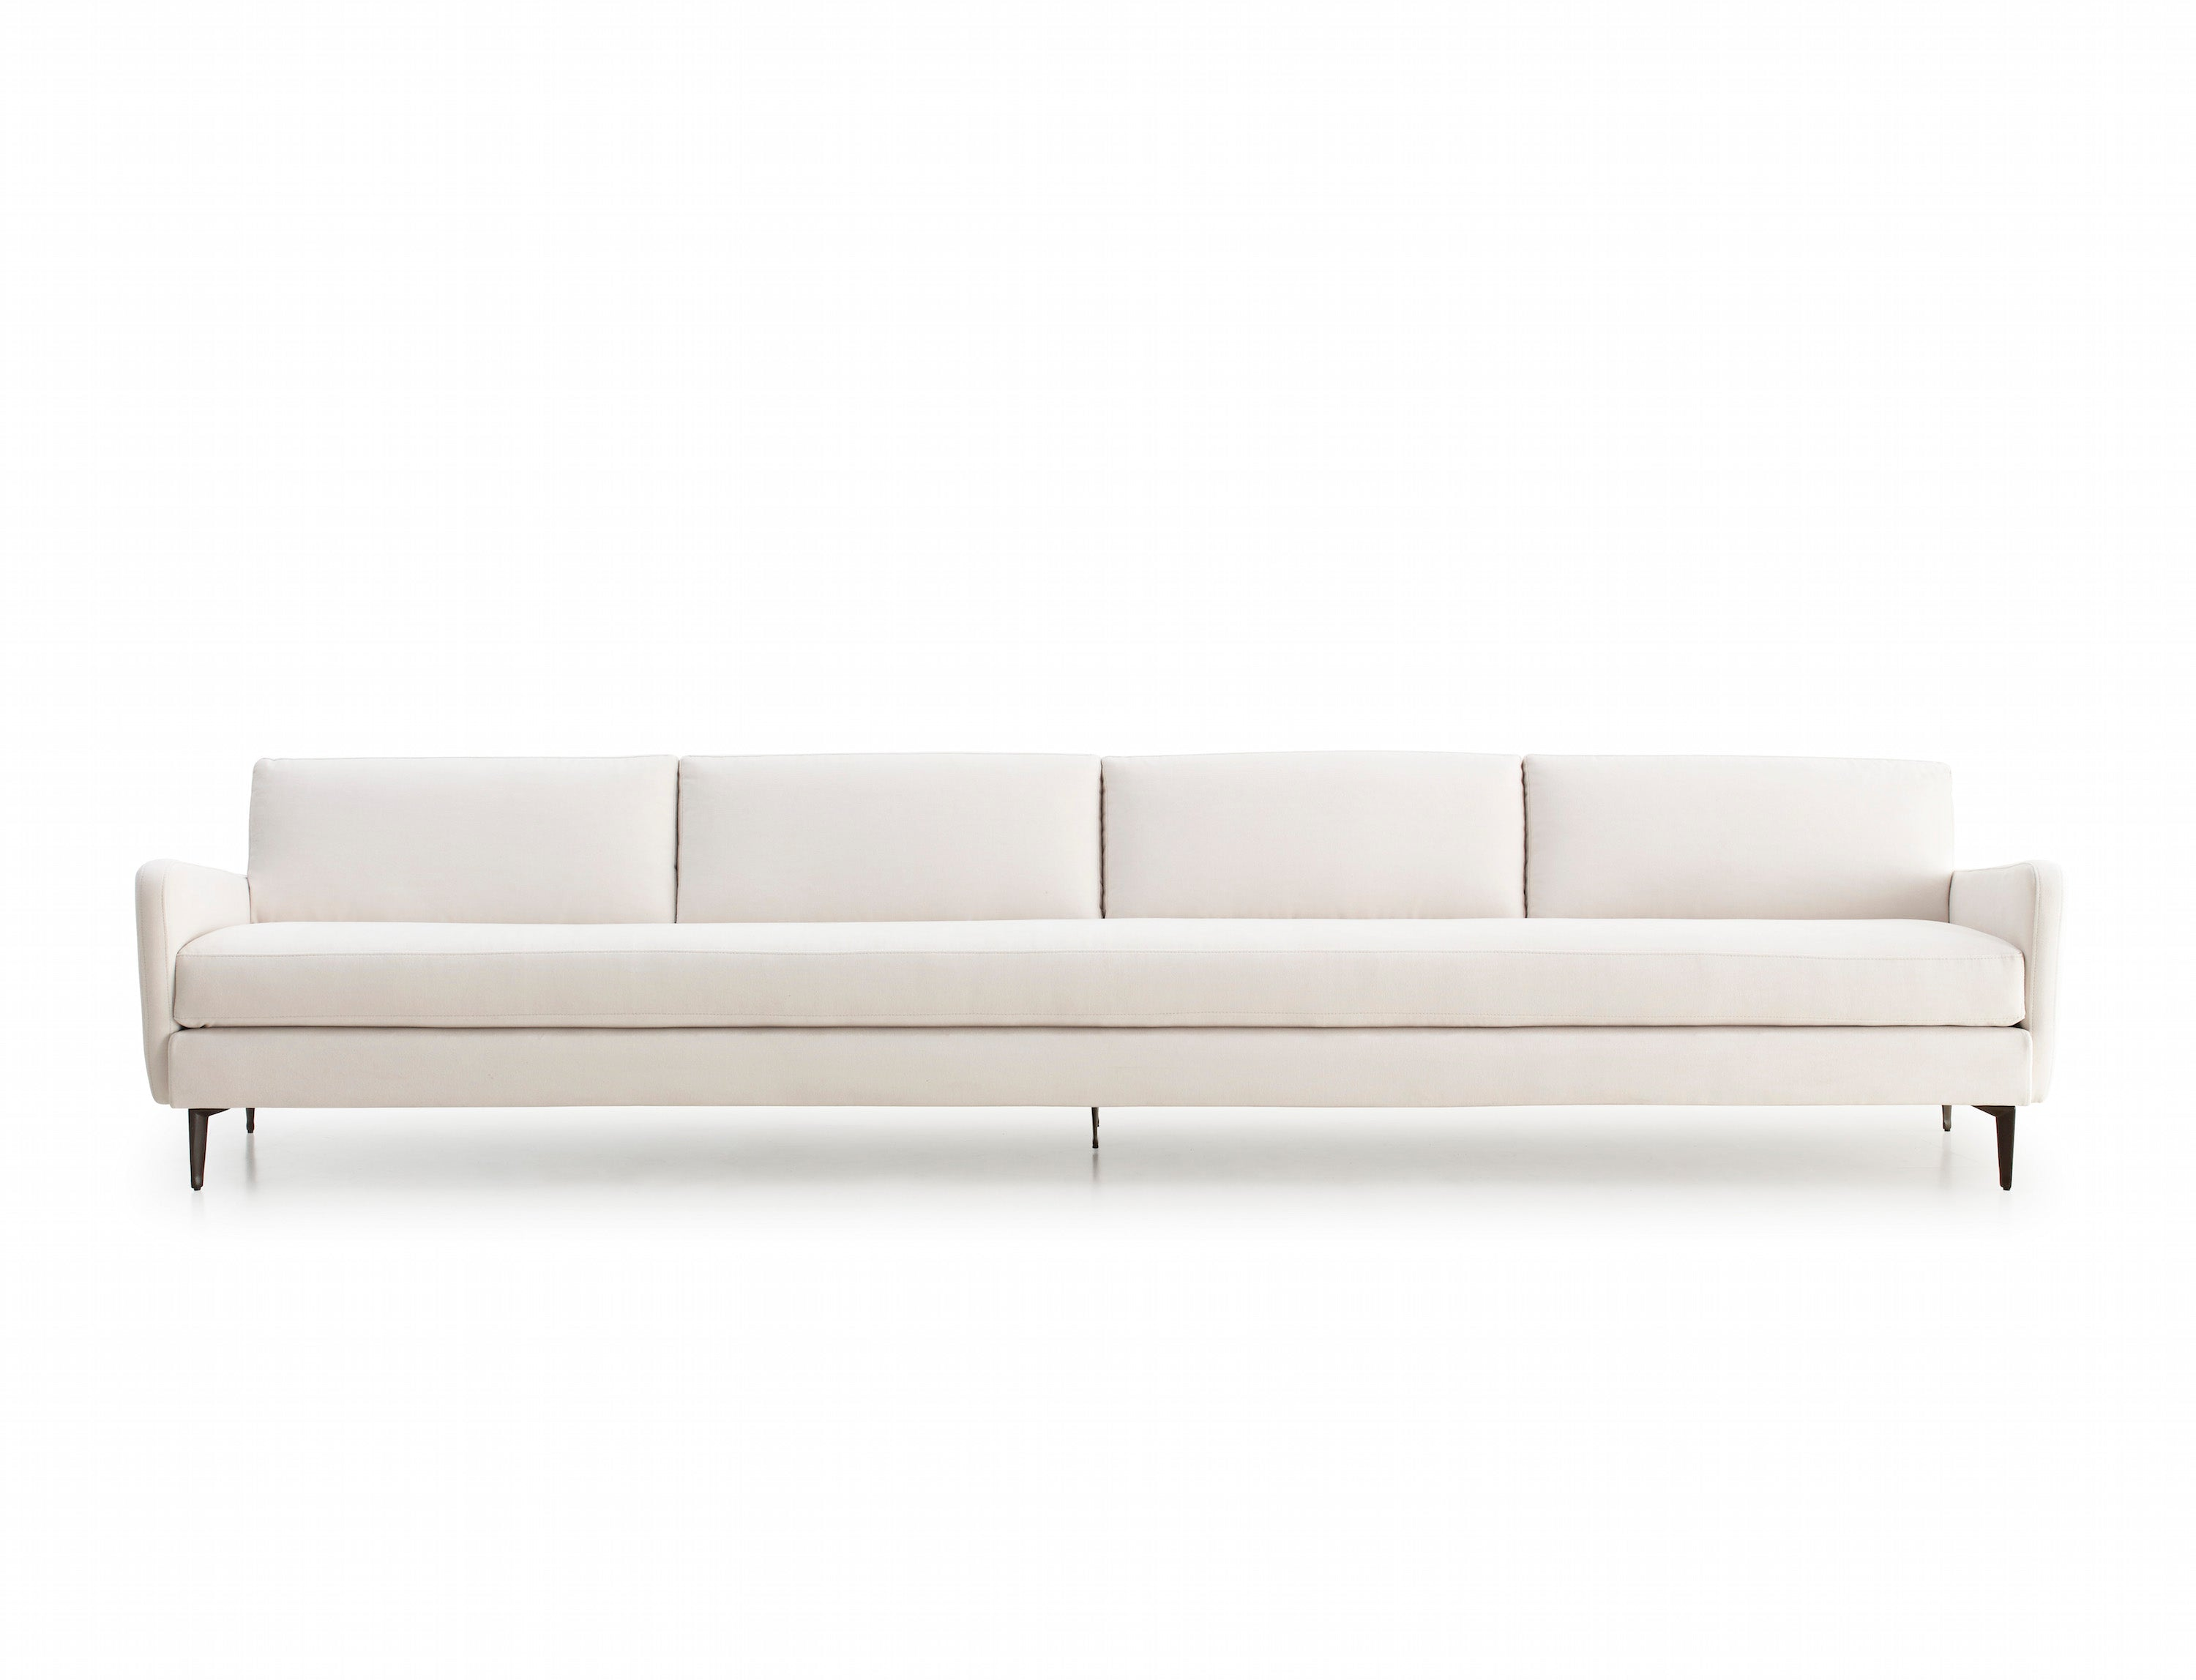 Moon curved sofa by Pedro Mendes - Kelly Christian Designs